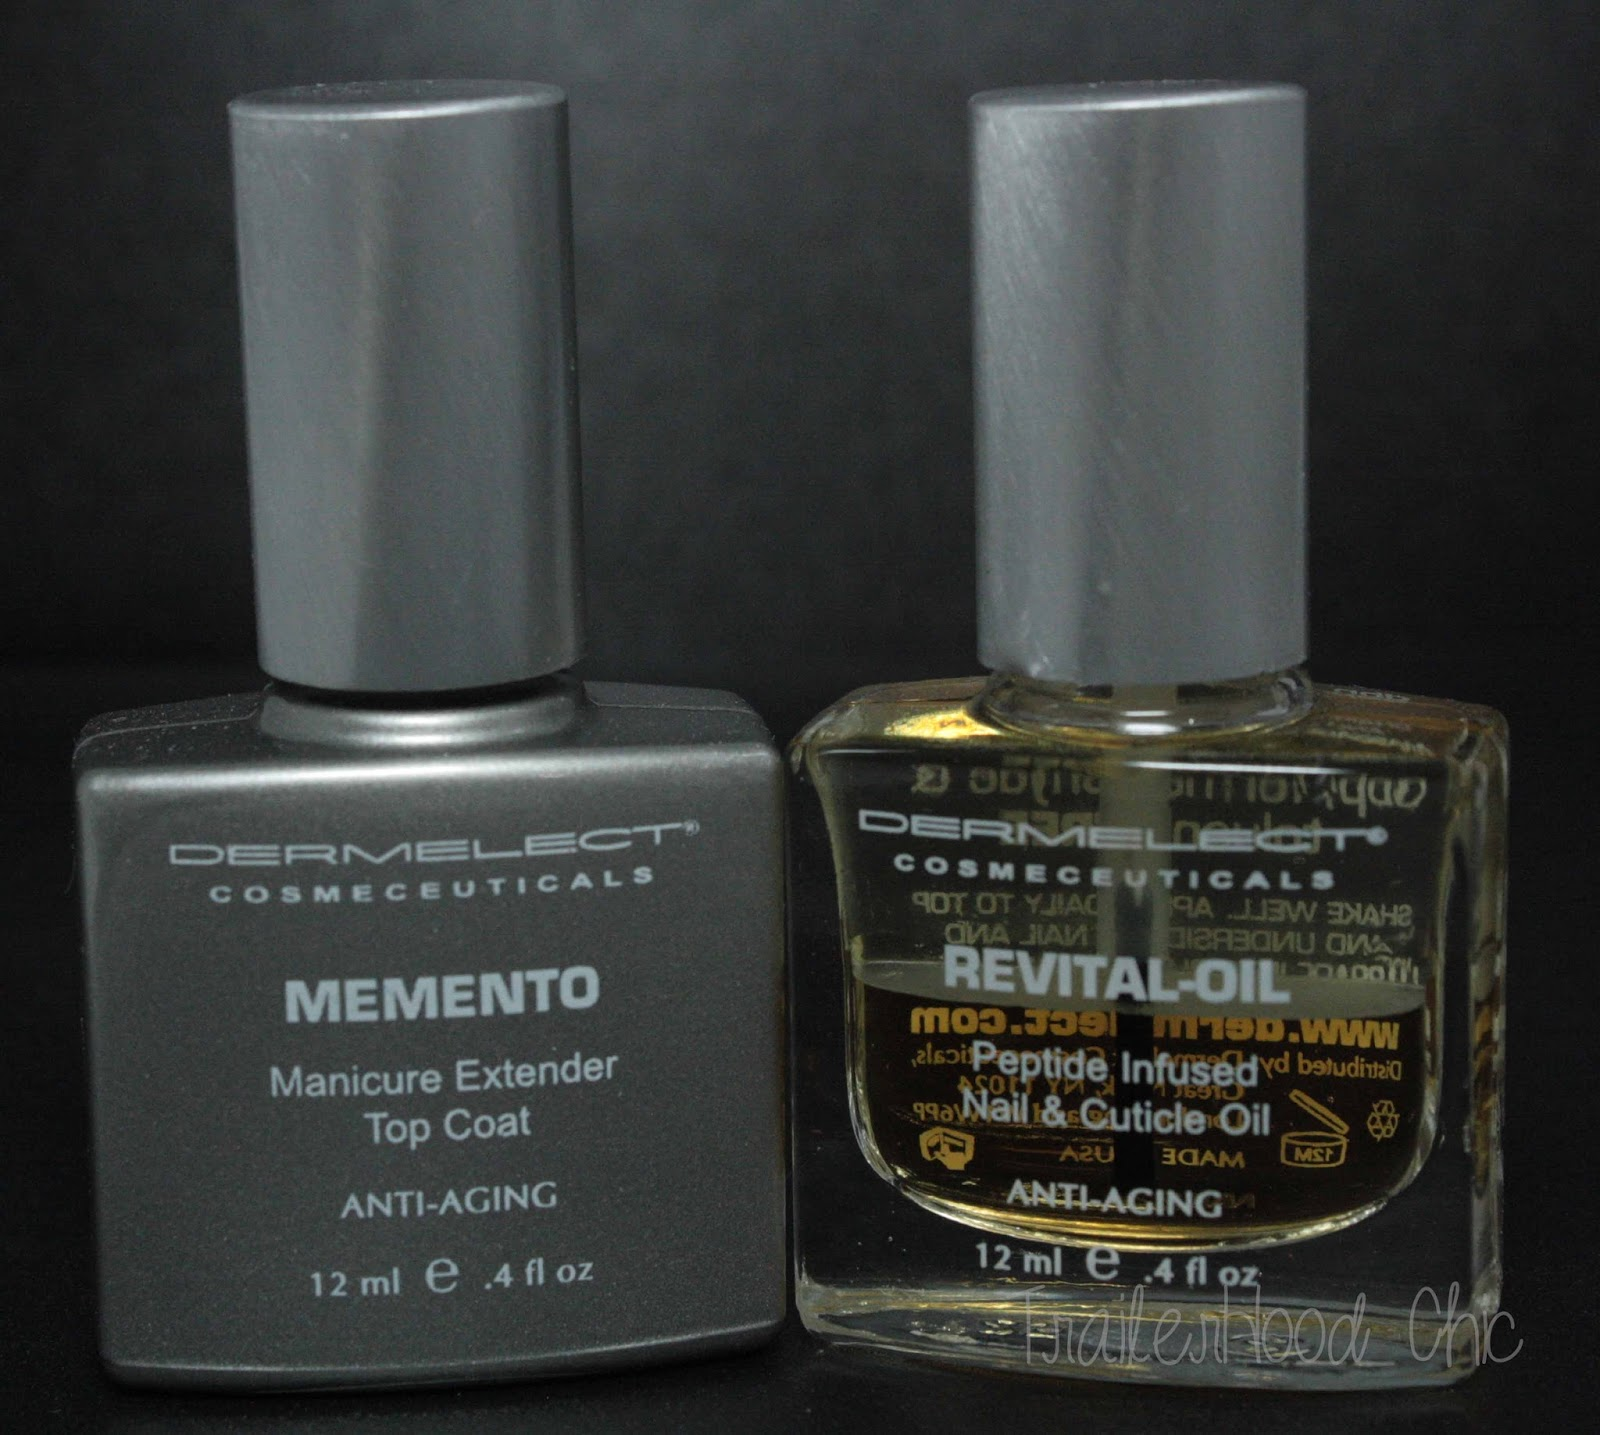 dermelect memento revital oil